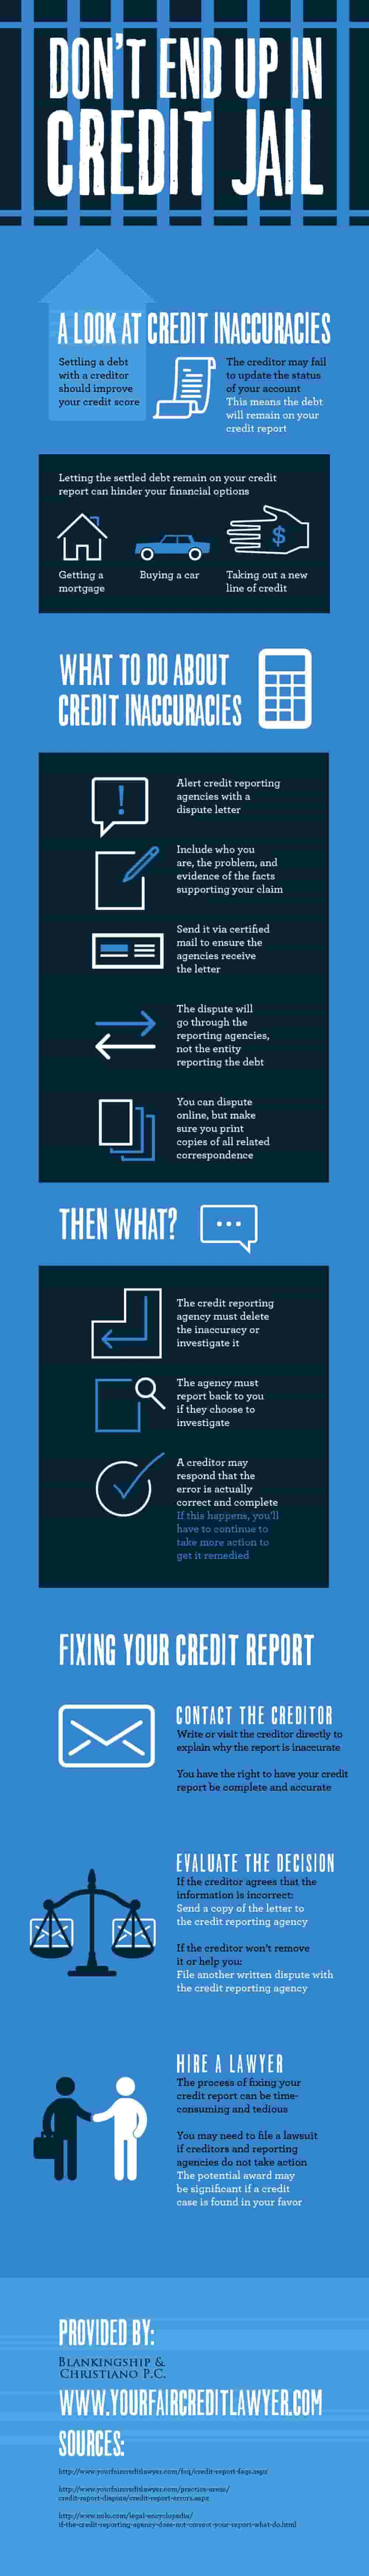 infographic - credit reporting agency in Fairfax